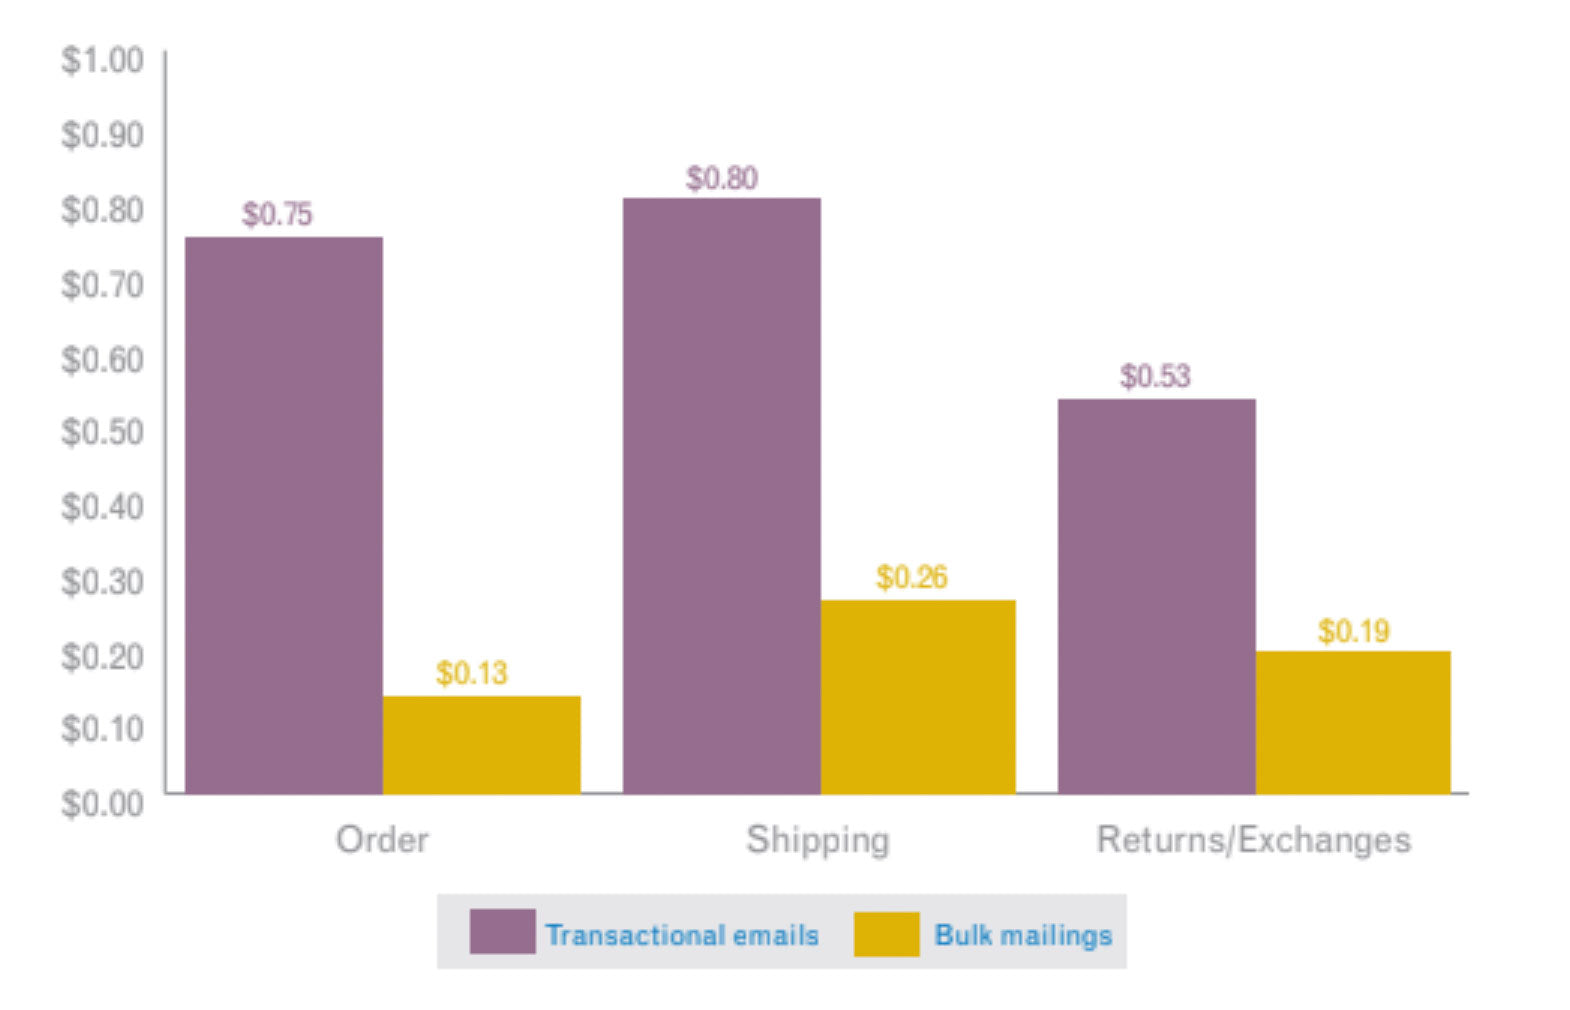 Shopify transactional email revenue